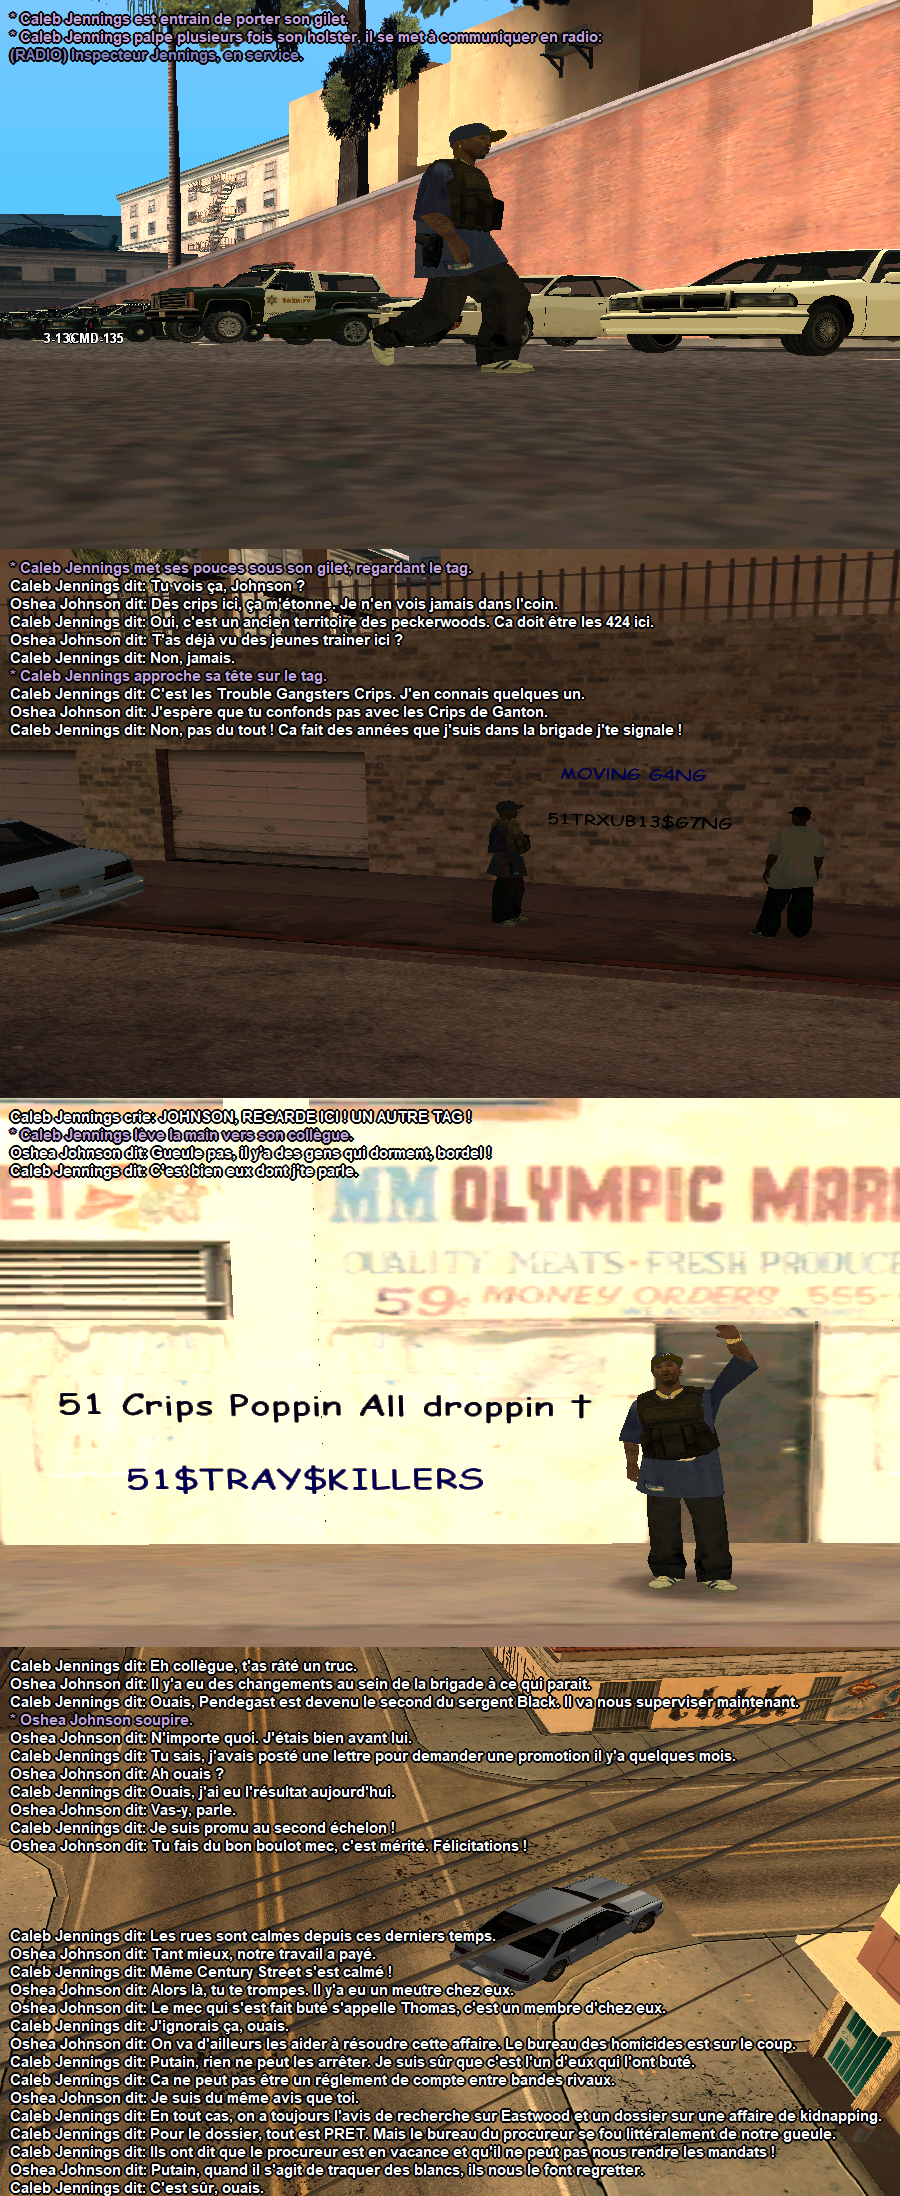 Los Santos Sheriff's Department - A tradition of service (8) - Page 16 1536158943-a